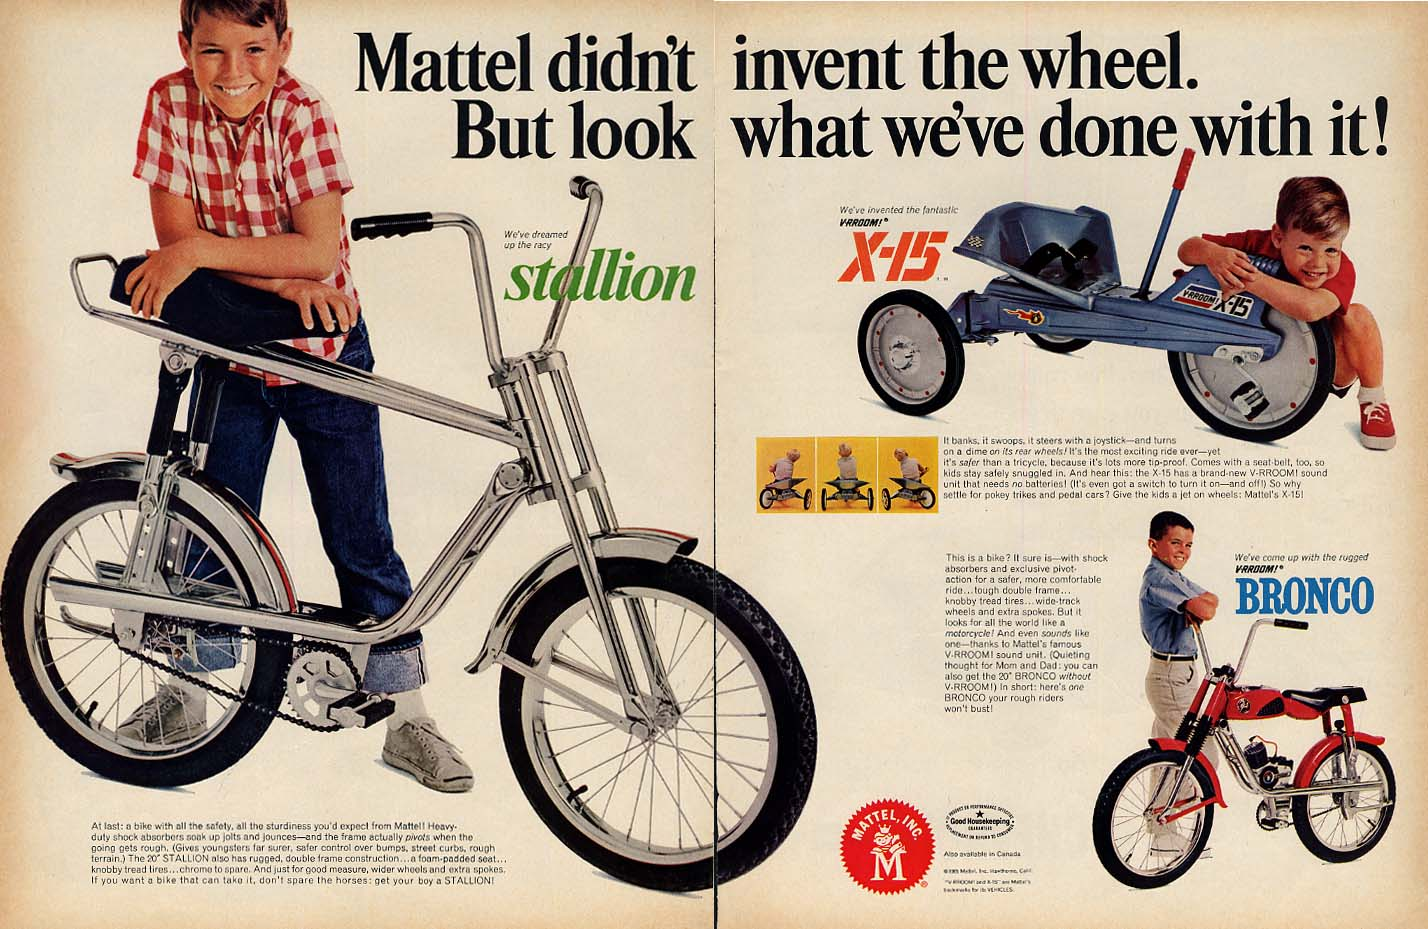 Look what Mattel did with the wheel Stallion bicycle X-15 & Bronco ad 1965 L